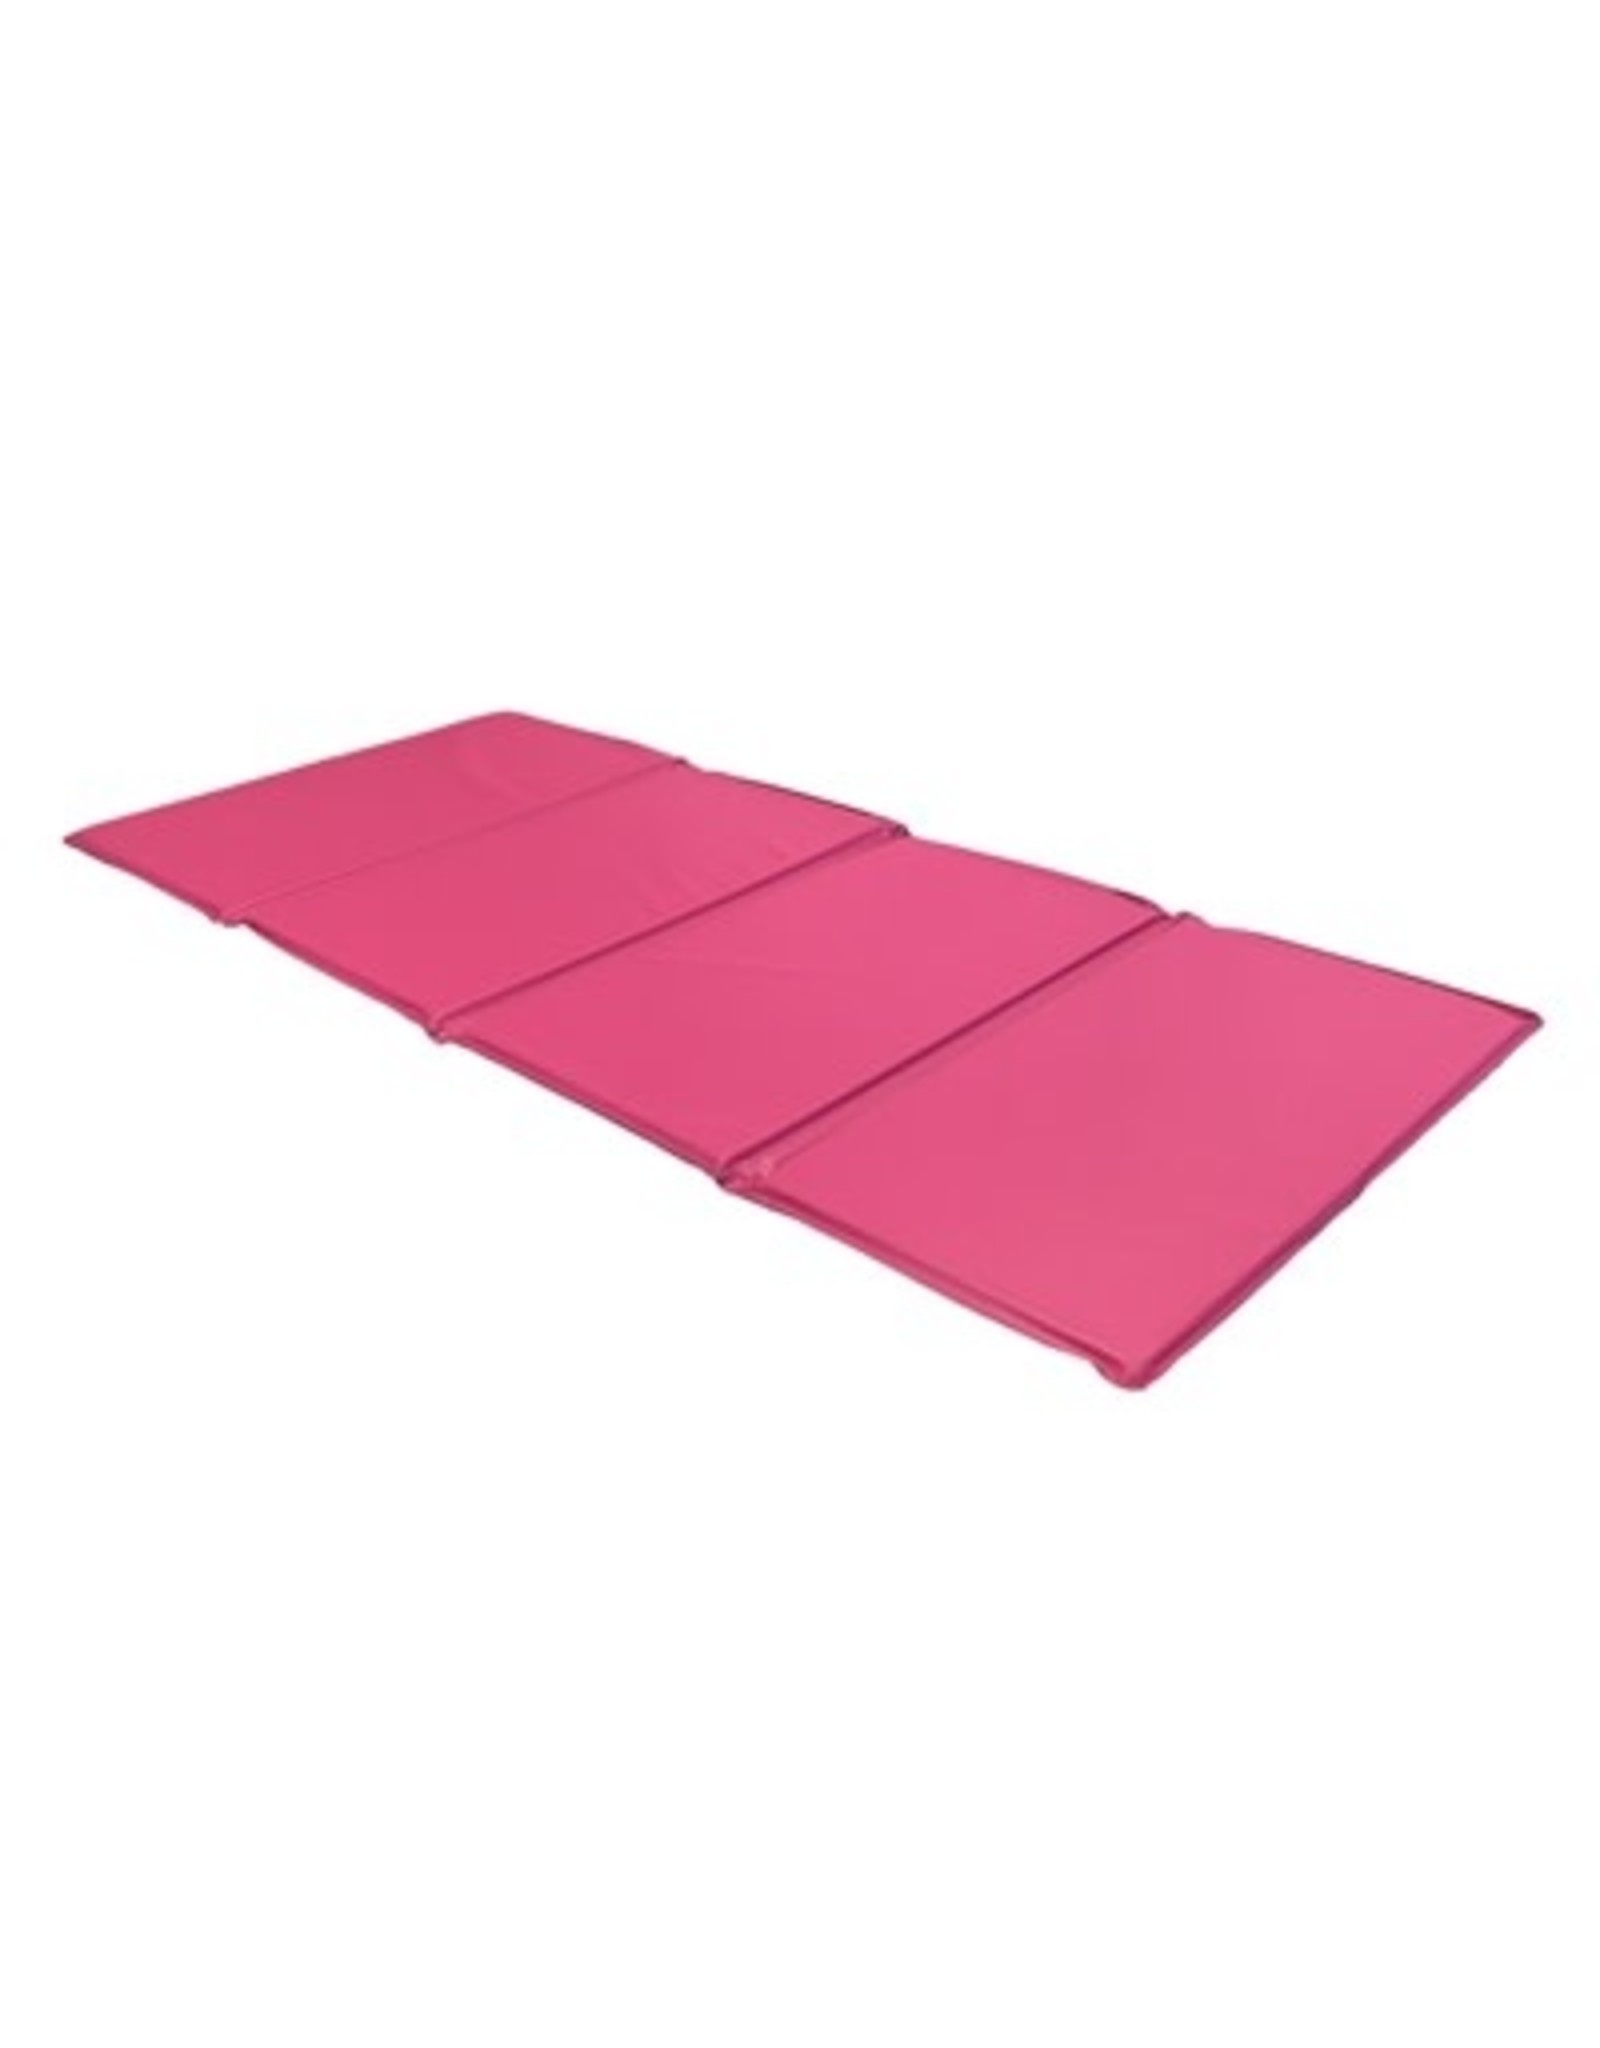 "Toddler Kinder Rest Mat, Blue/Pink, 8 mil Vinyl, 3/4"" x 21"" x 46""One Year Warranty"